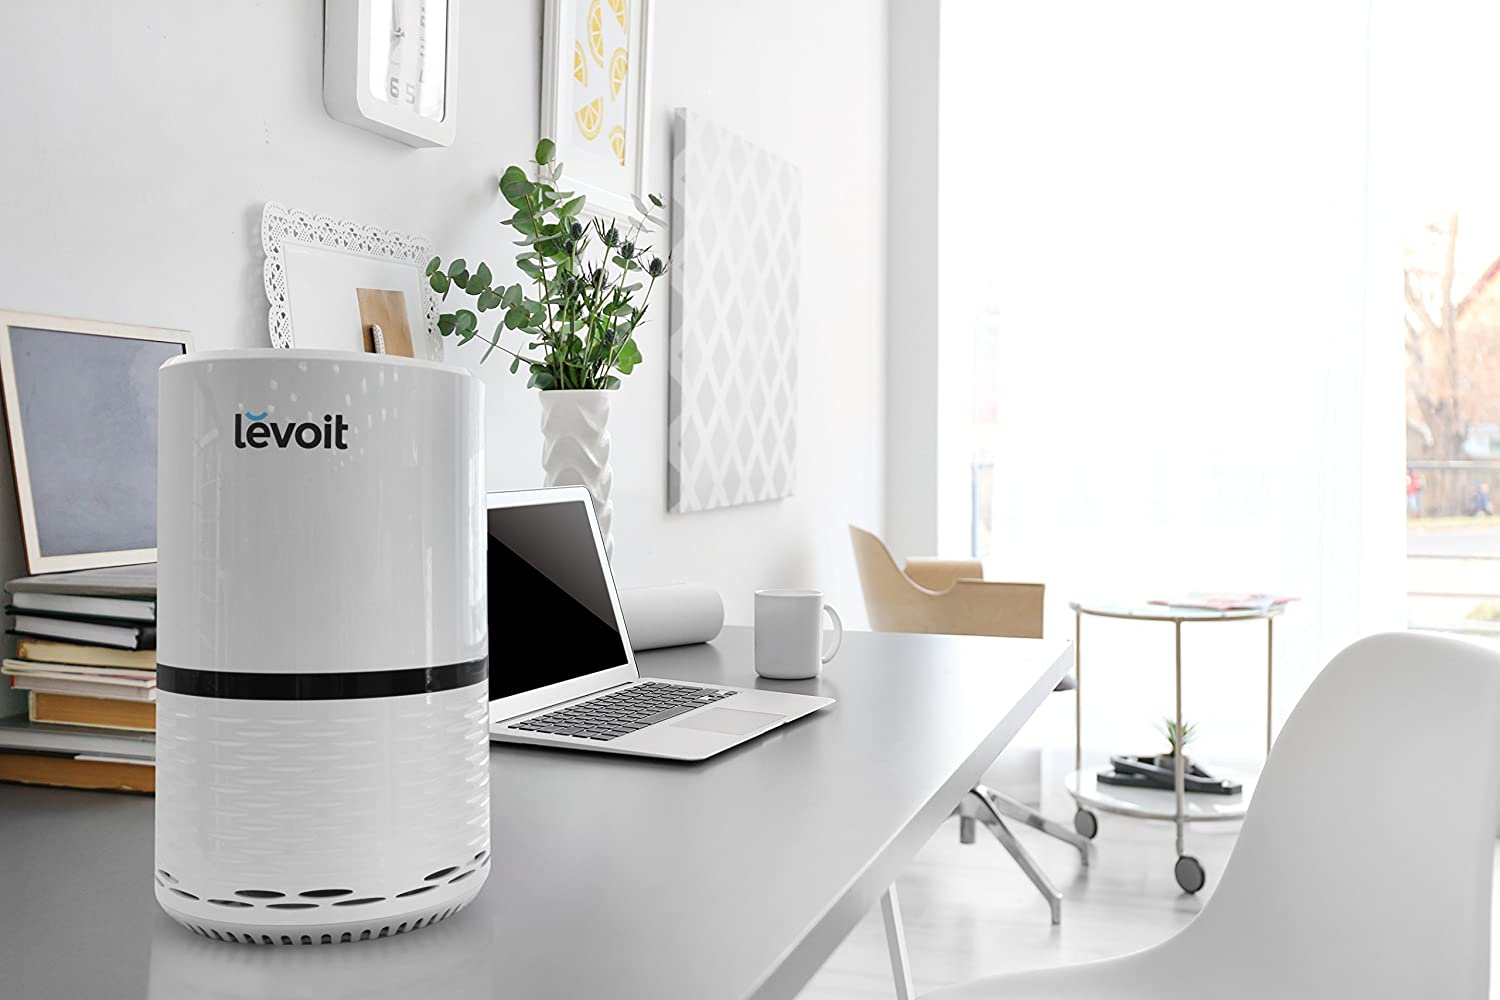 sale levoit lv h132 air purifier